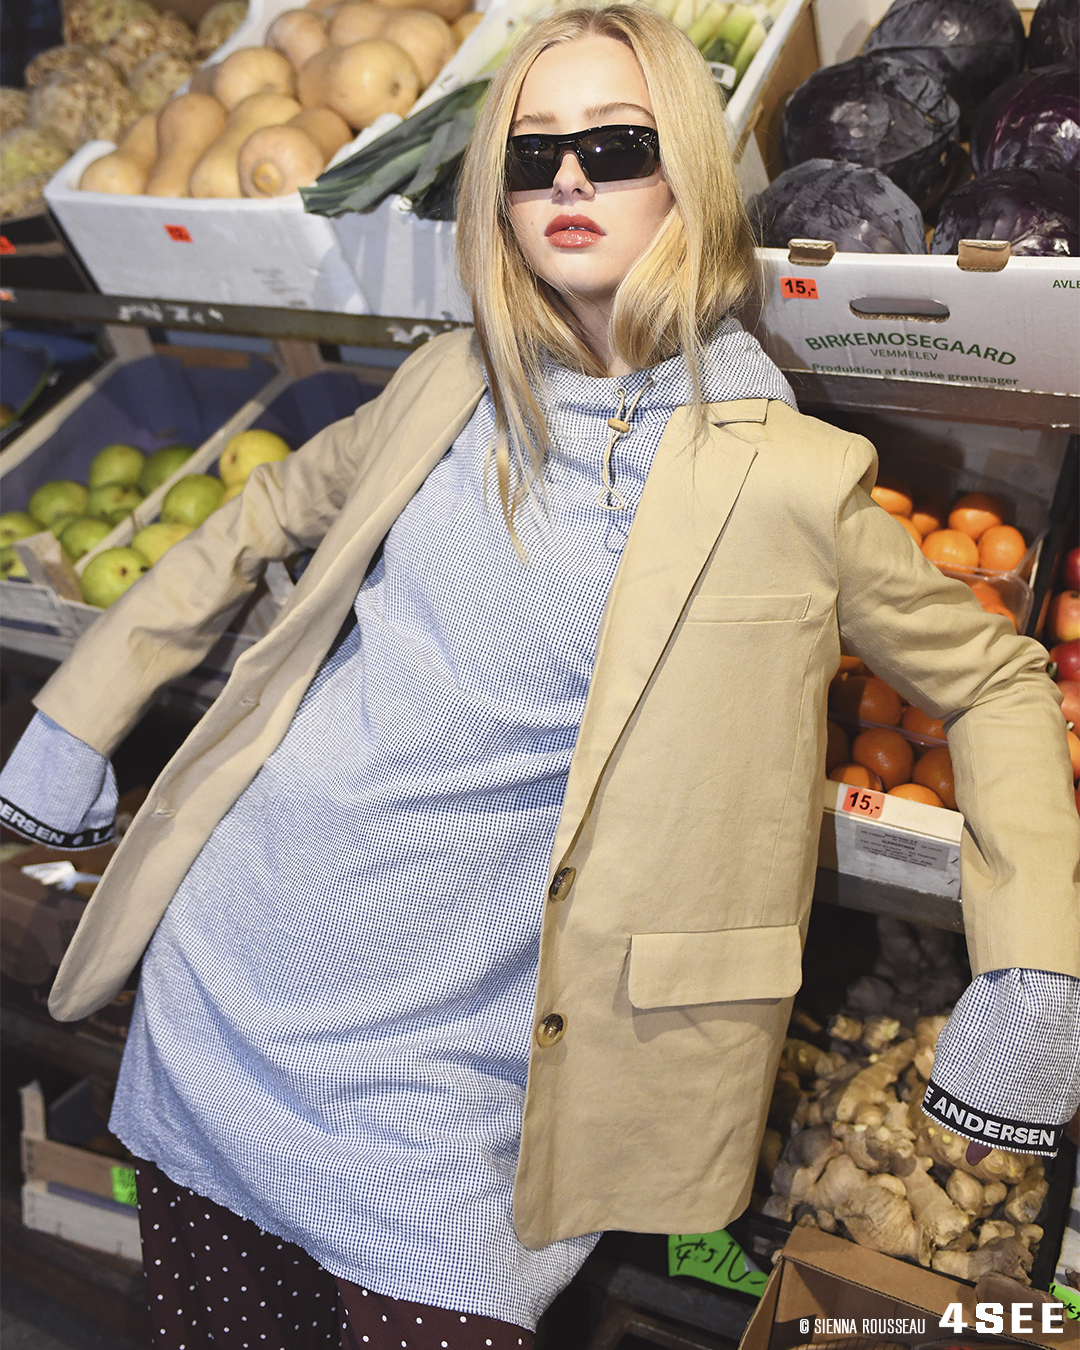 SCANDI-SAVVY eyewear editorial by 4SEE, featuring black skinny sports sunglasses by Oakley